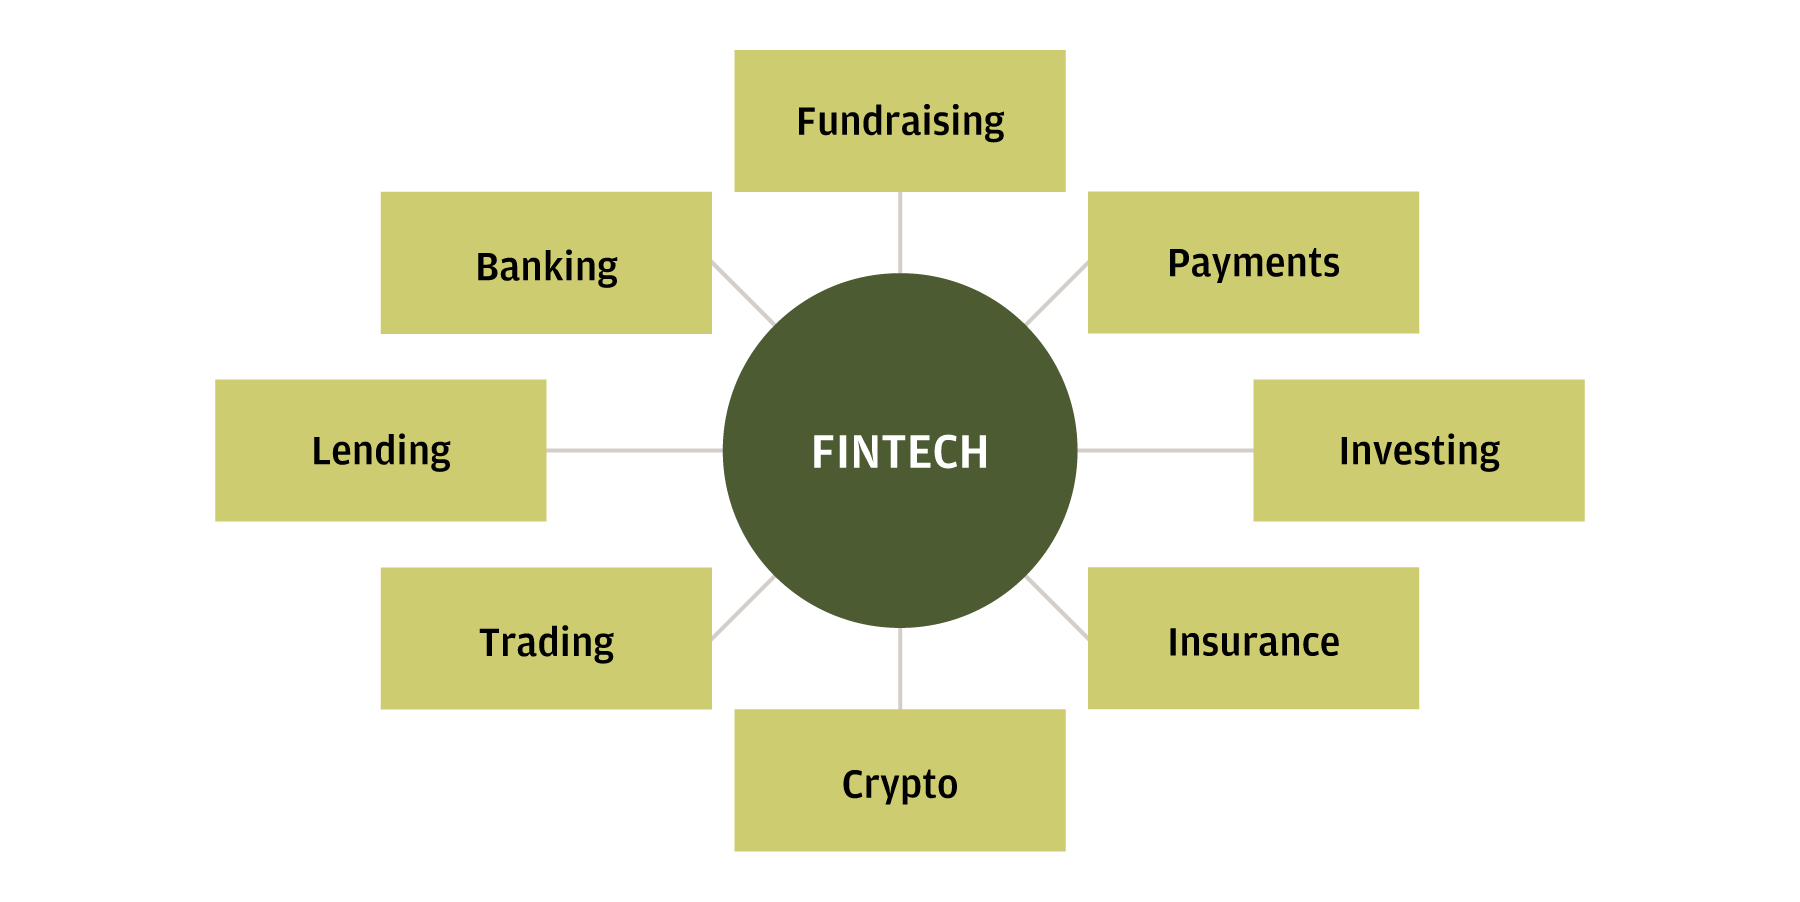 The flow charts illustrates the different components of our financial lives that Fintech is transforming.